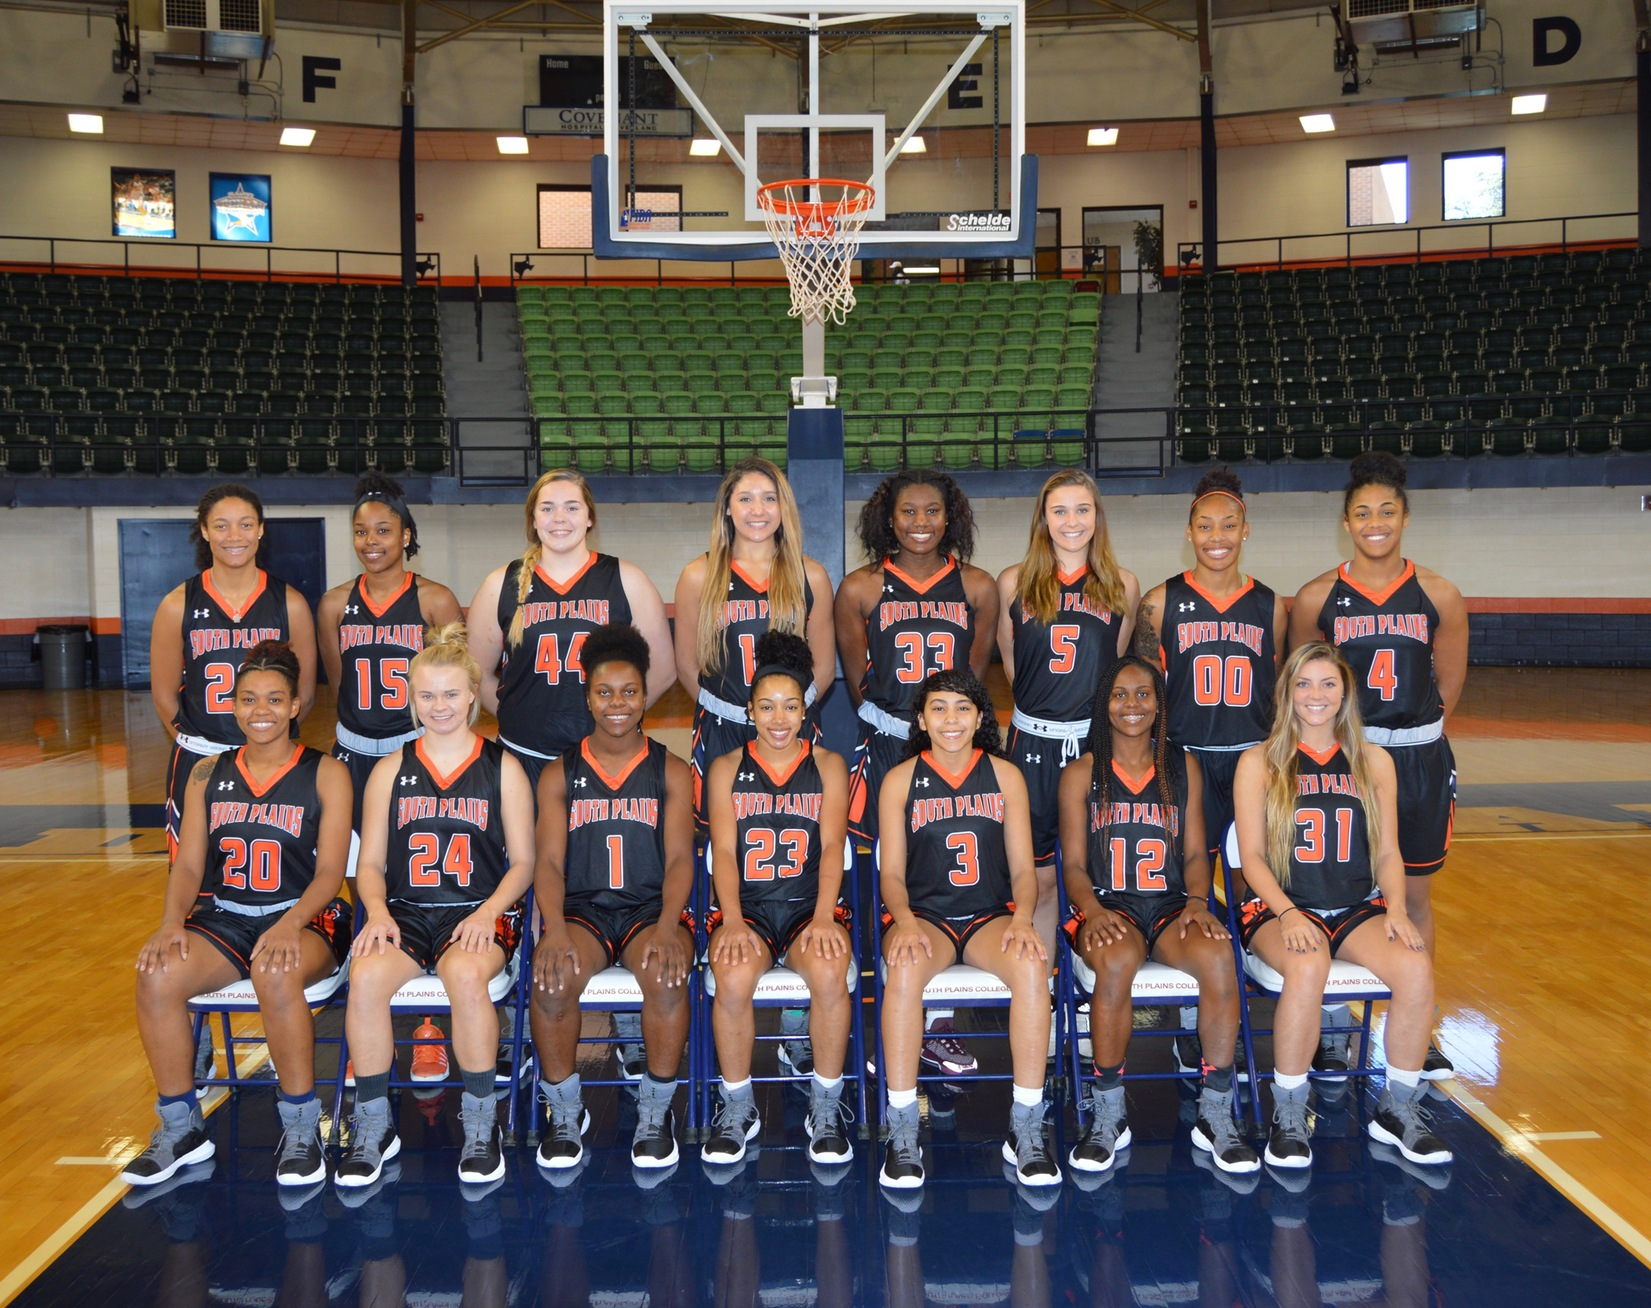 Kuehne scores 15, Lady Texans improve to 4-1 with 77-39 win over SWCID